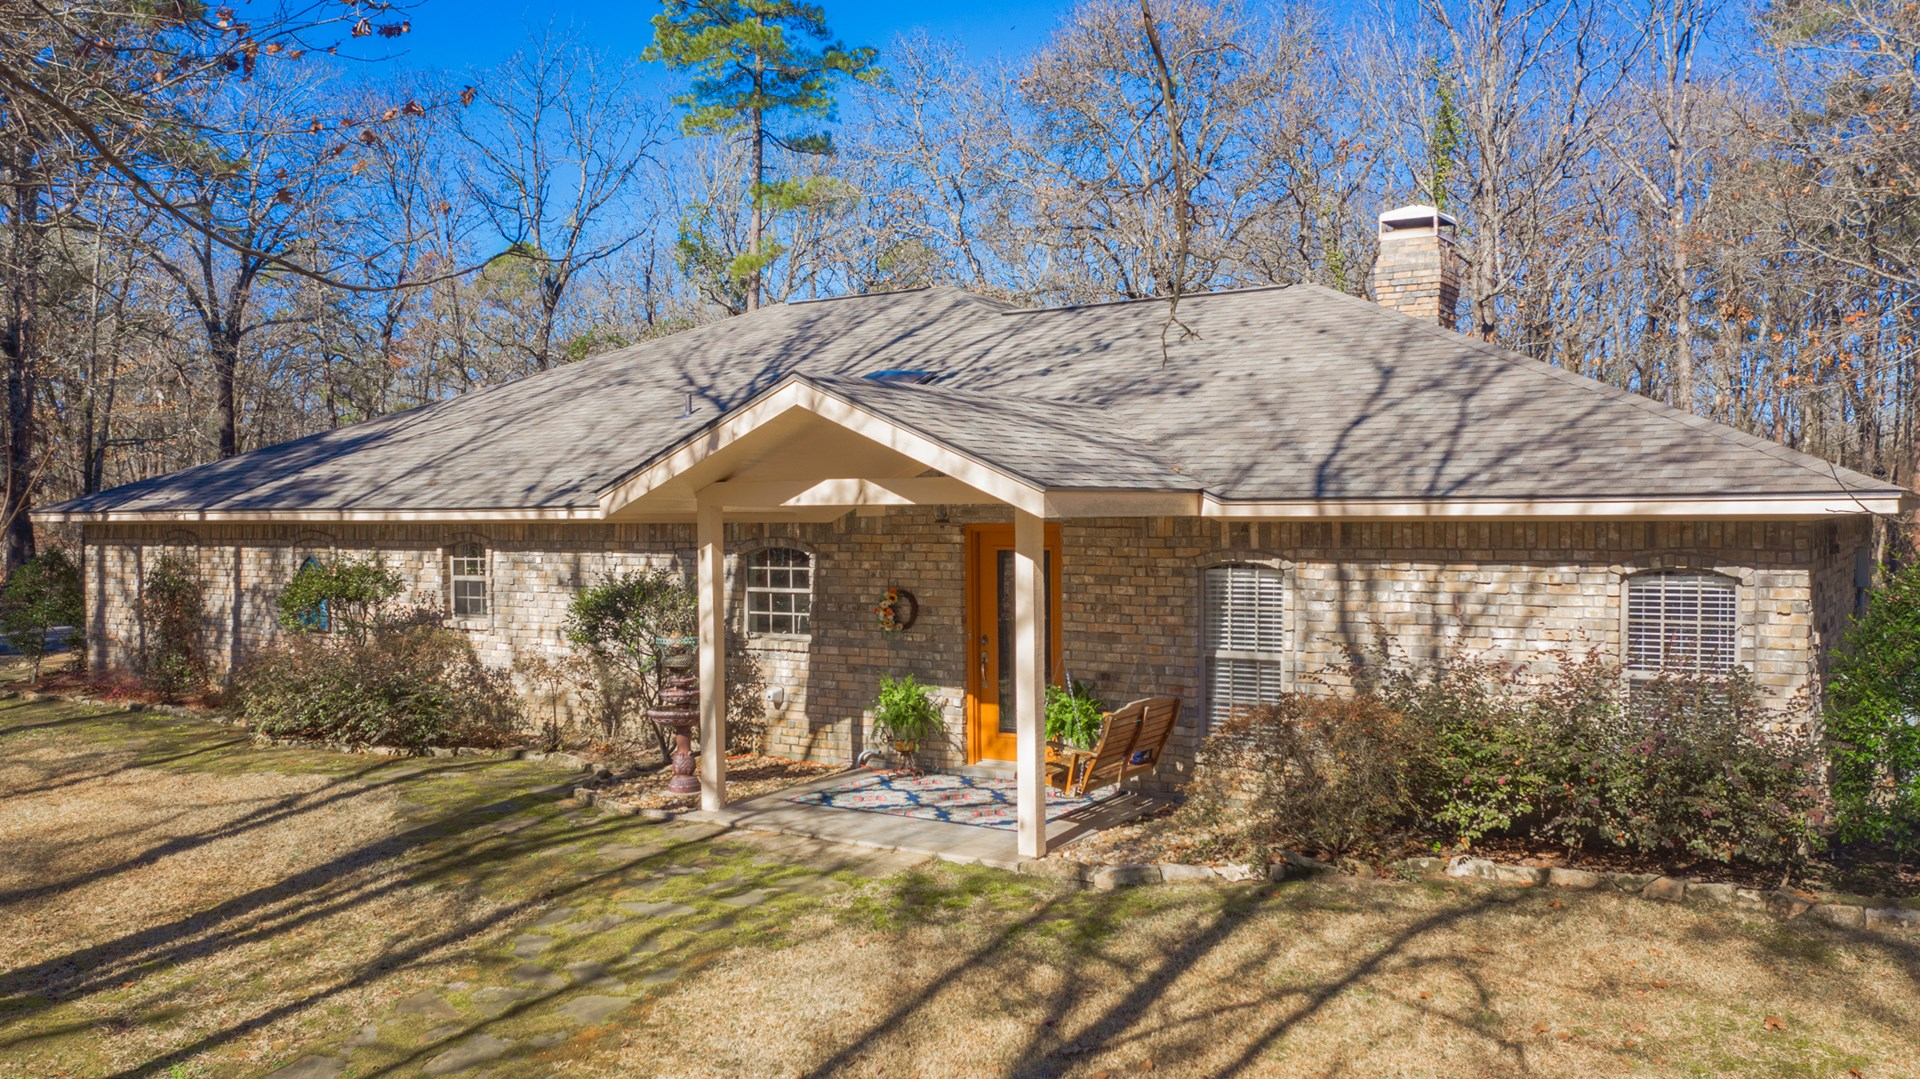 COUNTRY HOME EAST TEXAS 4 WOODED ACRES GATED PRIVATE HAWKINS